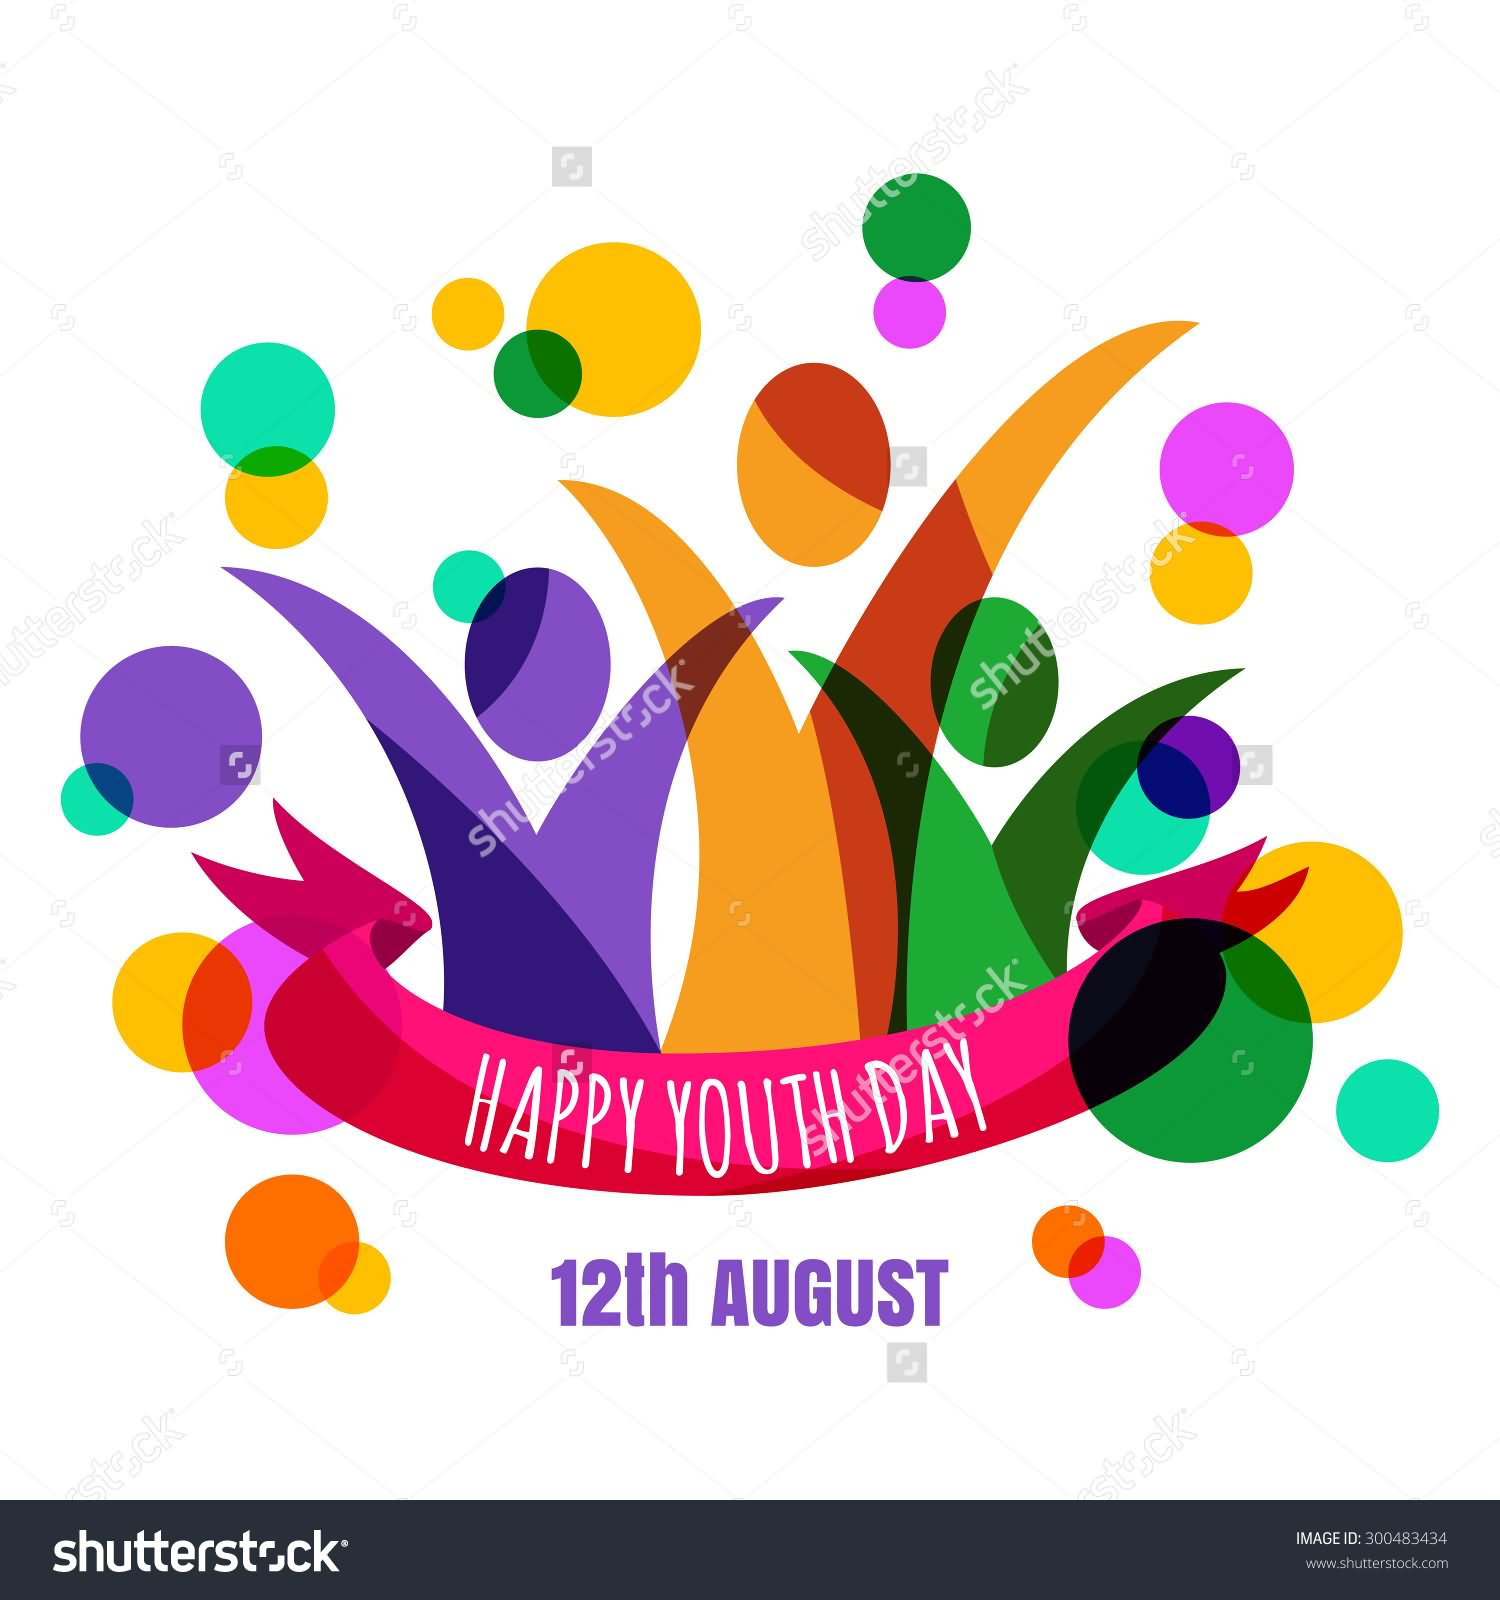 Happy-Youth-Day-12th-August.jpg